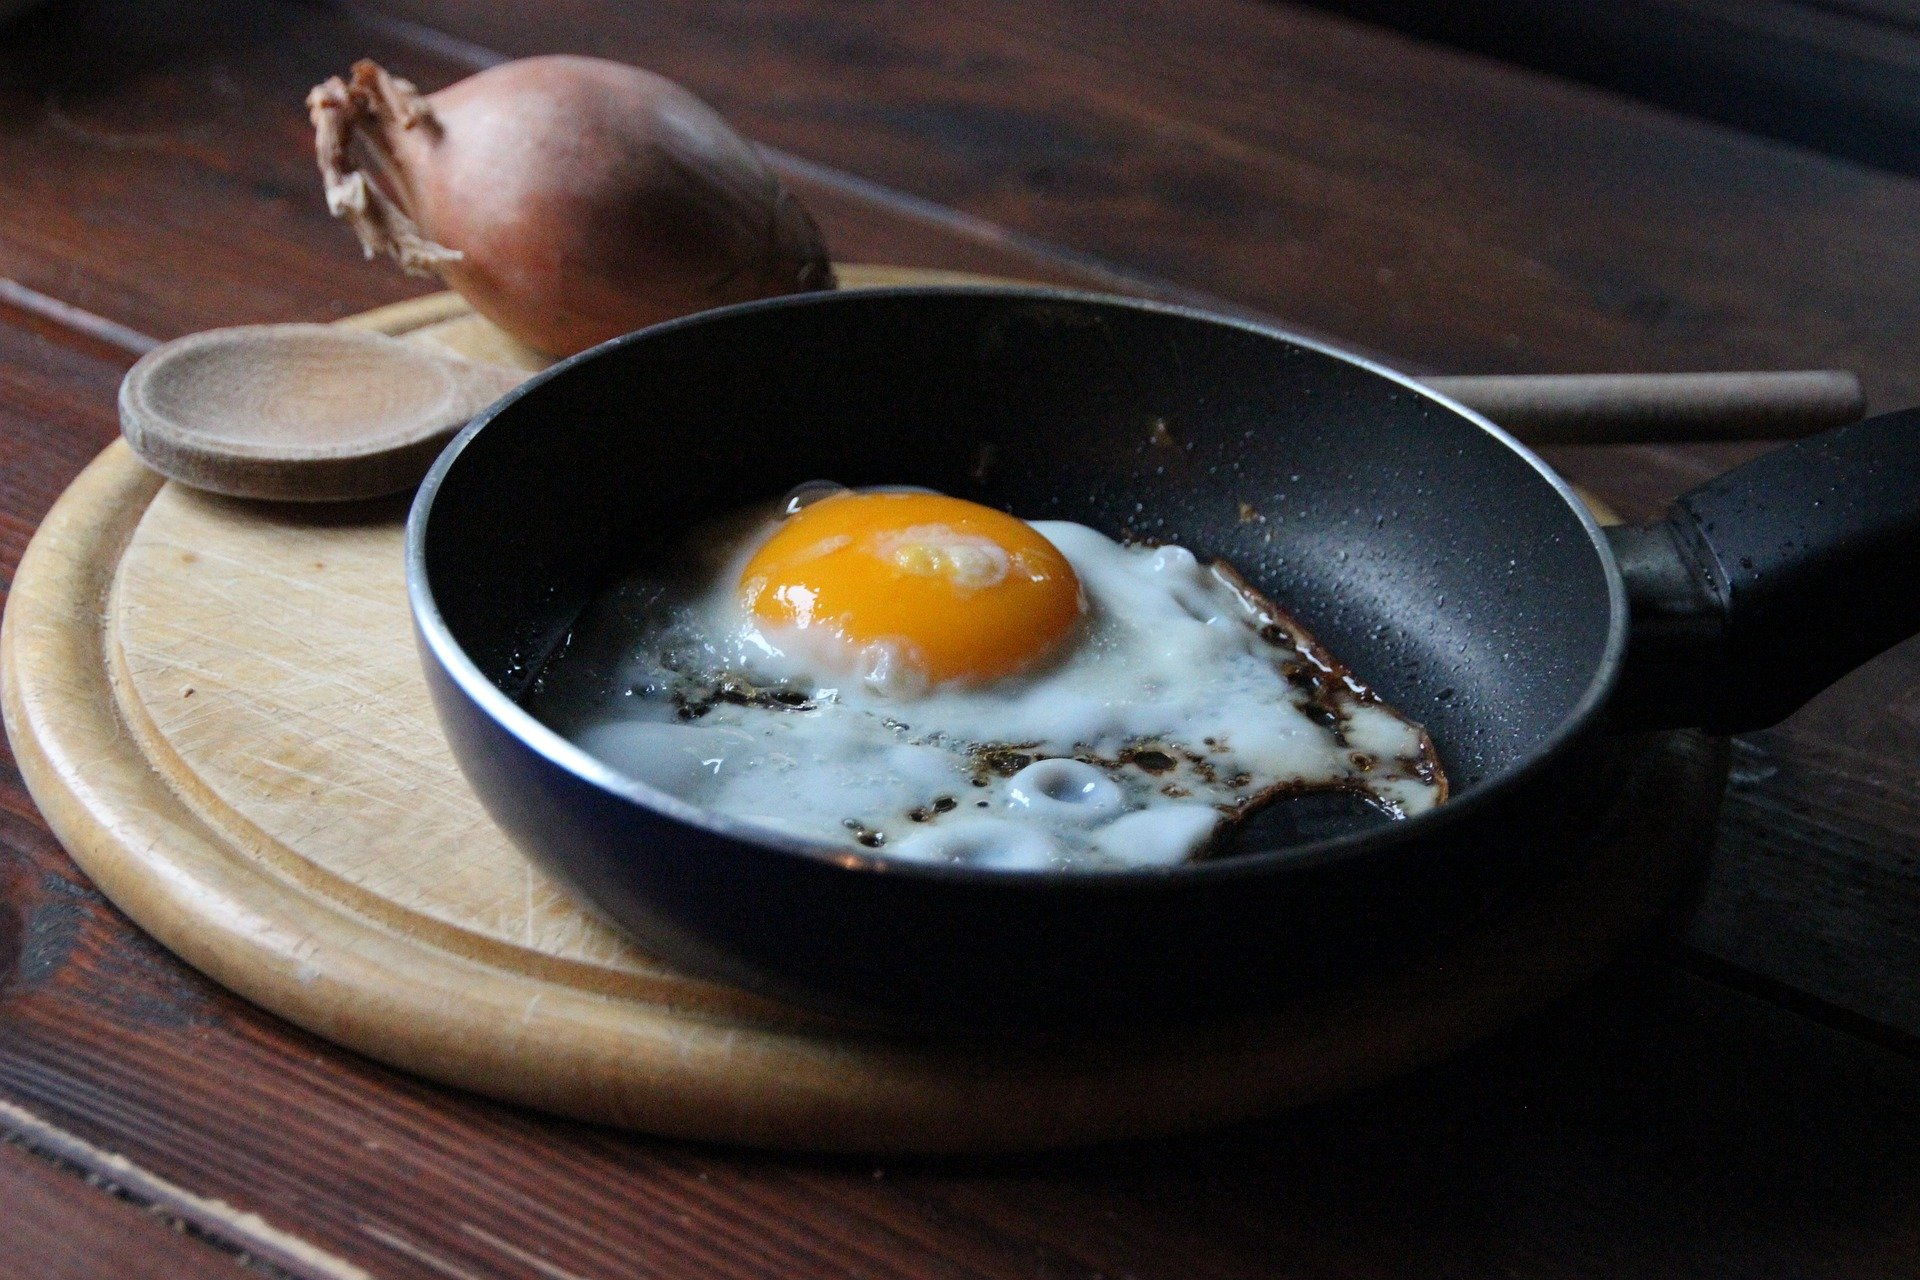 An egg frying in a pan.   Source: Pixabay